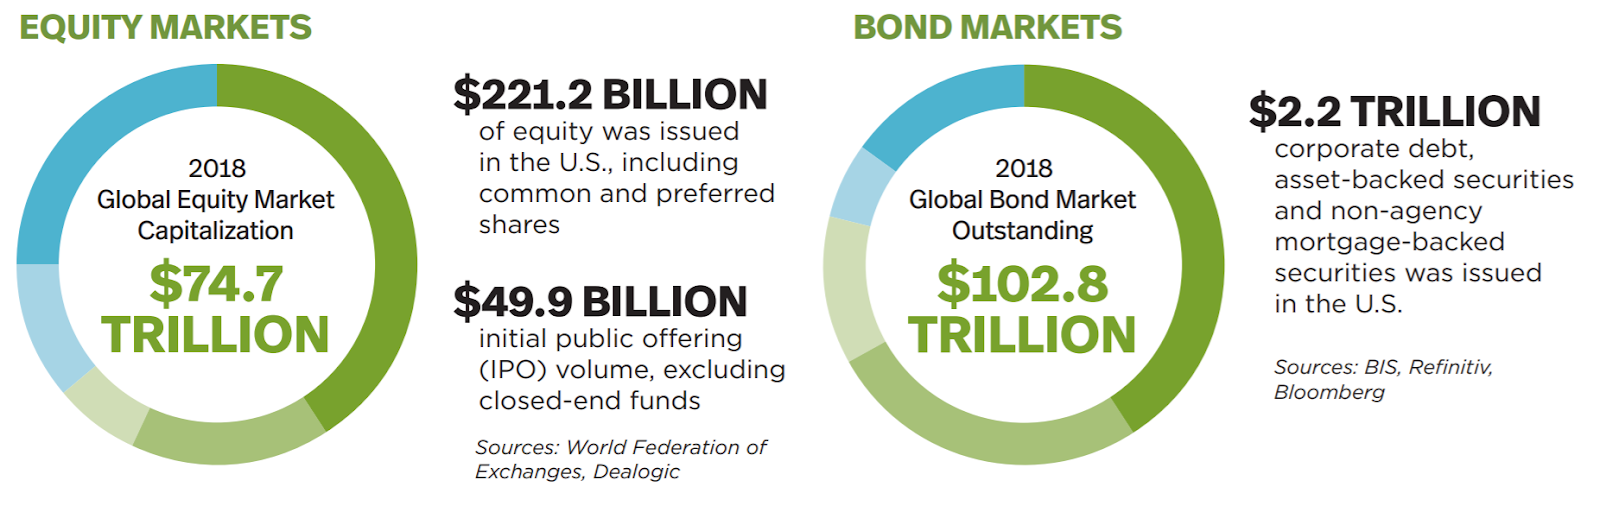 Comparing the equity and bond markets trillions